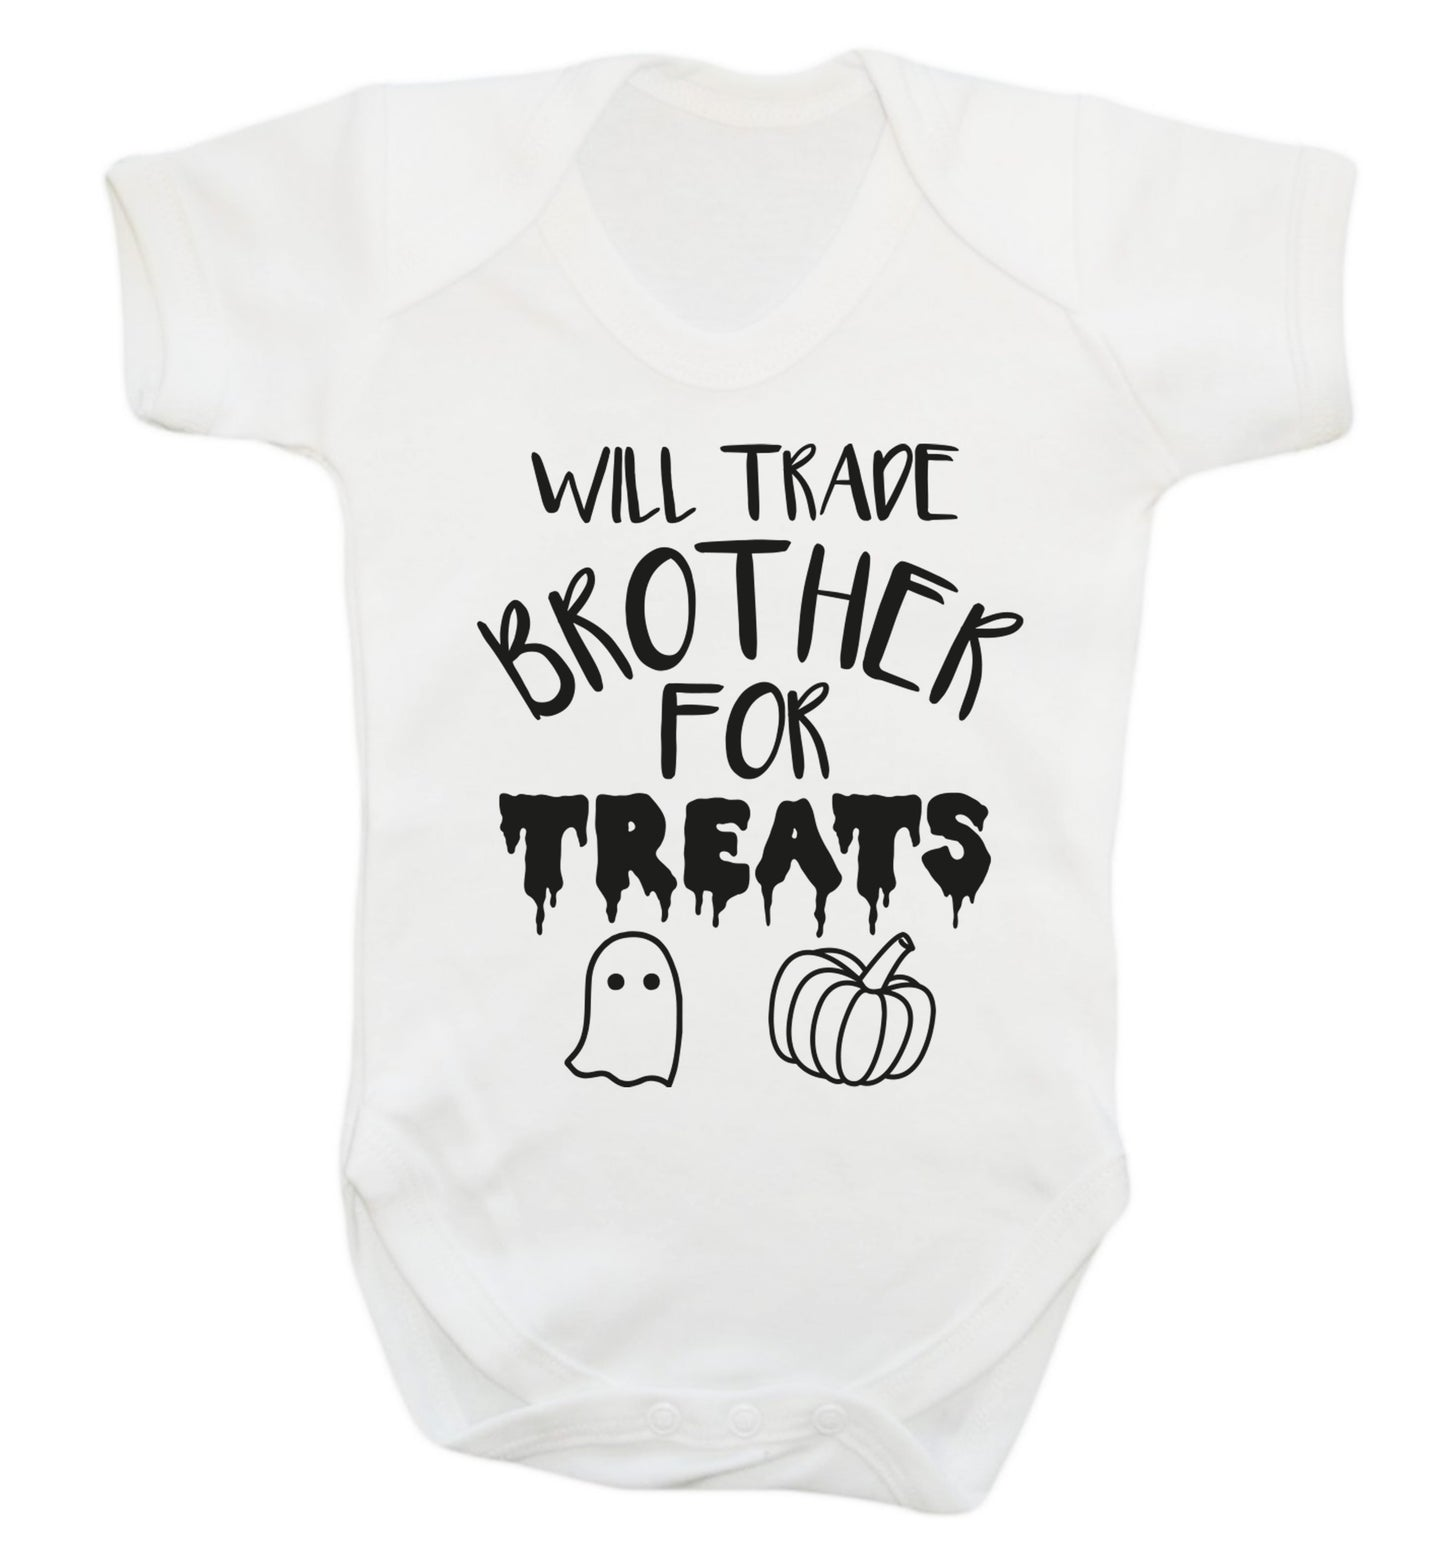 Will trade brother for treats Baby Vest white 18-24 months